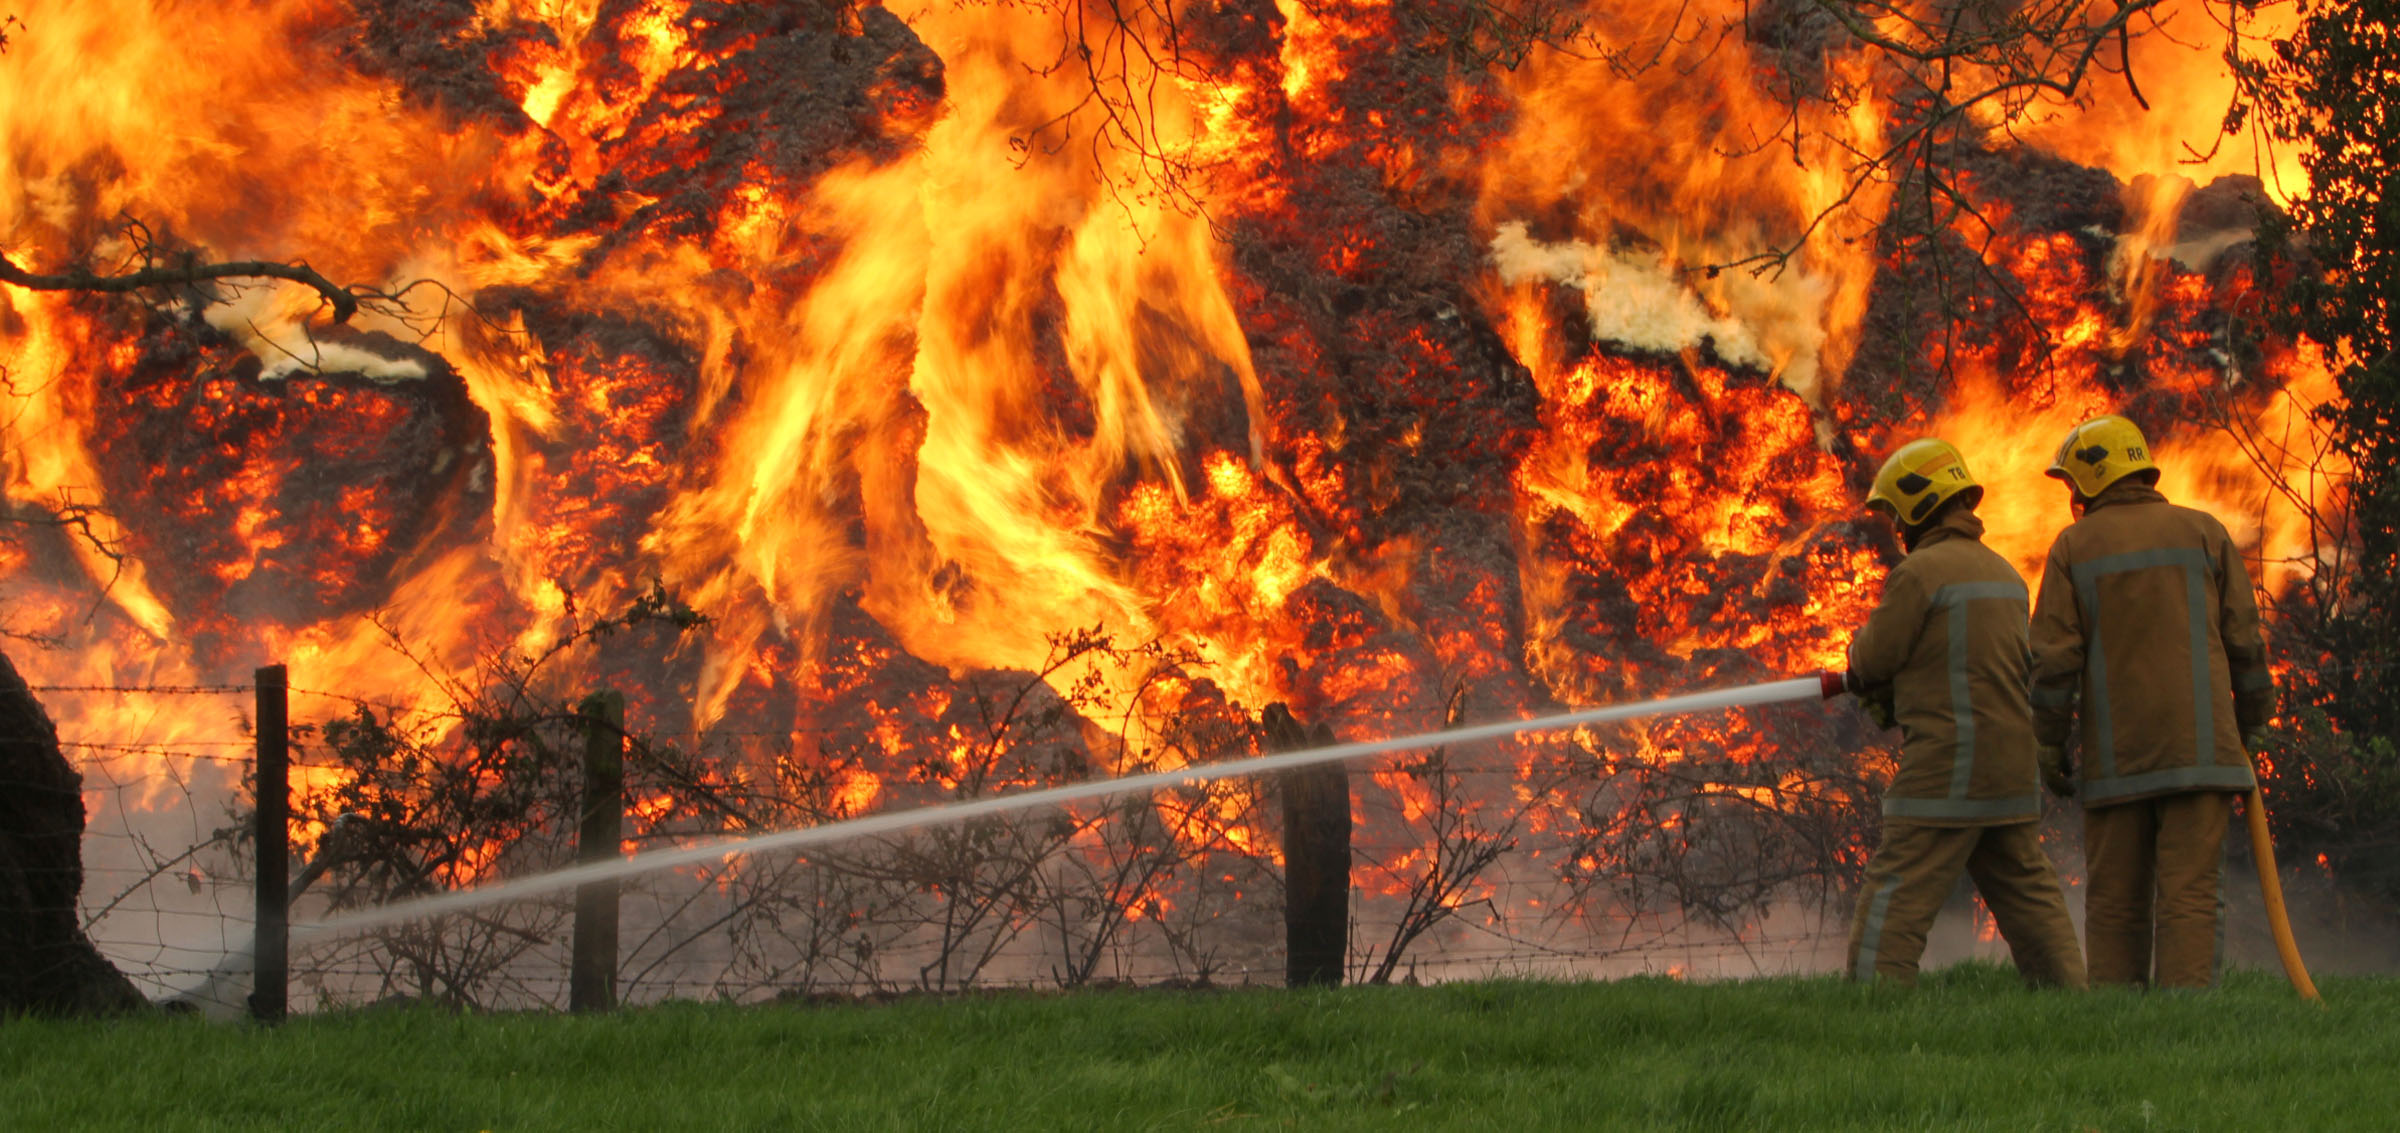 The most intense fire ever attended by Shropshire firefighter Roger Smith in 2011